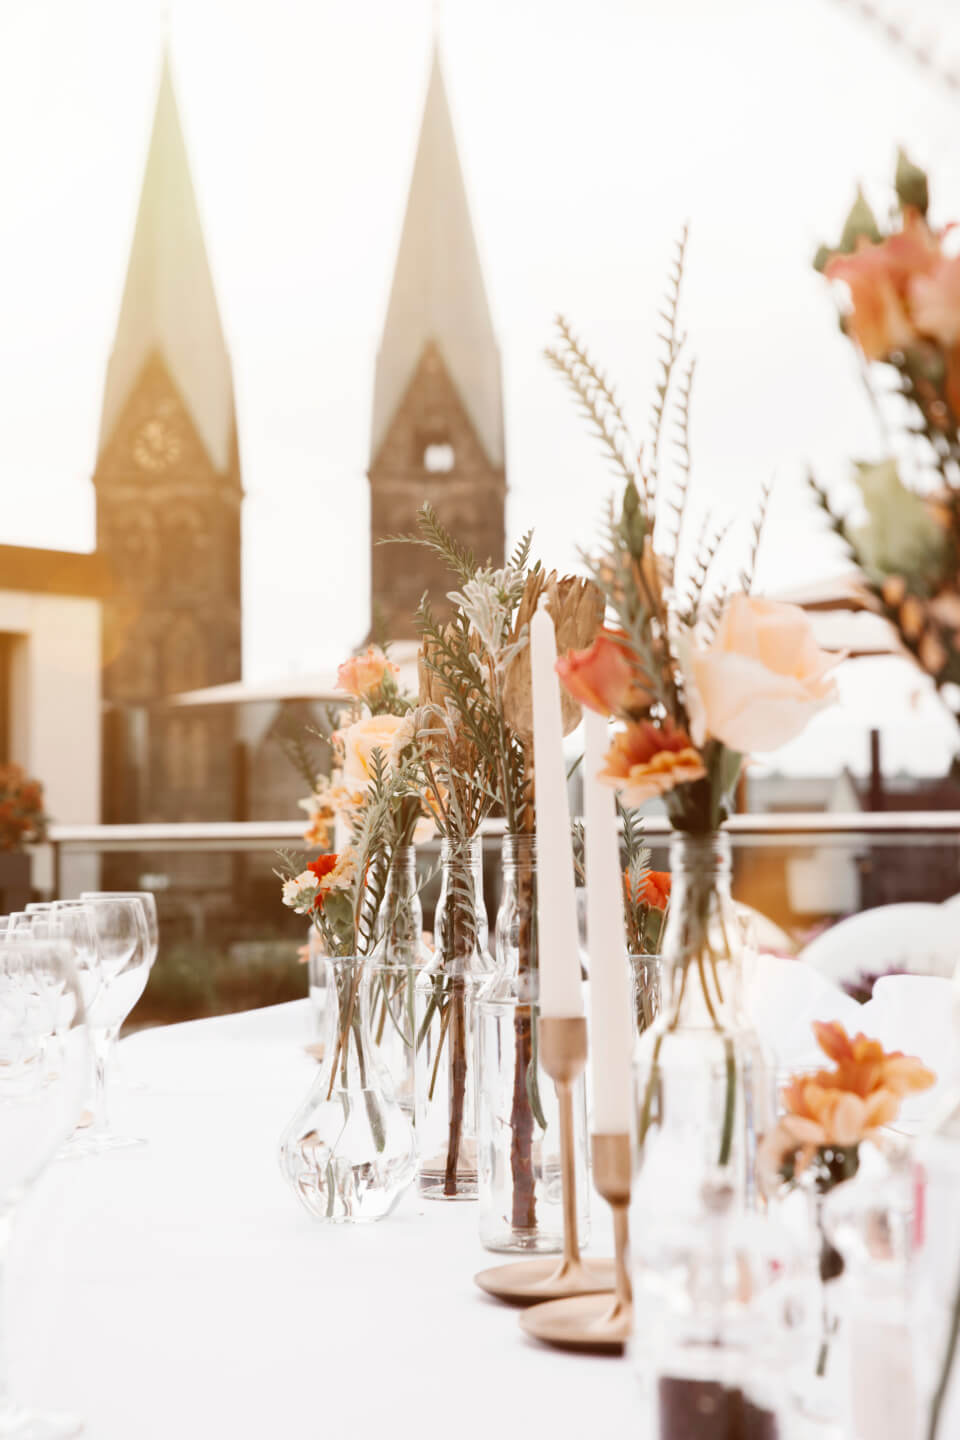 summery weddingdecoration with a view to the St. Petri church